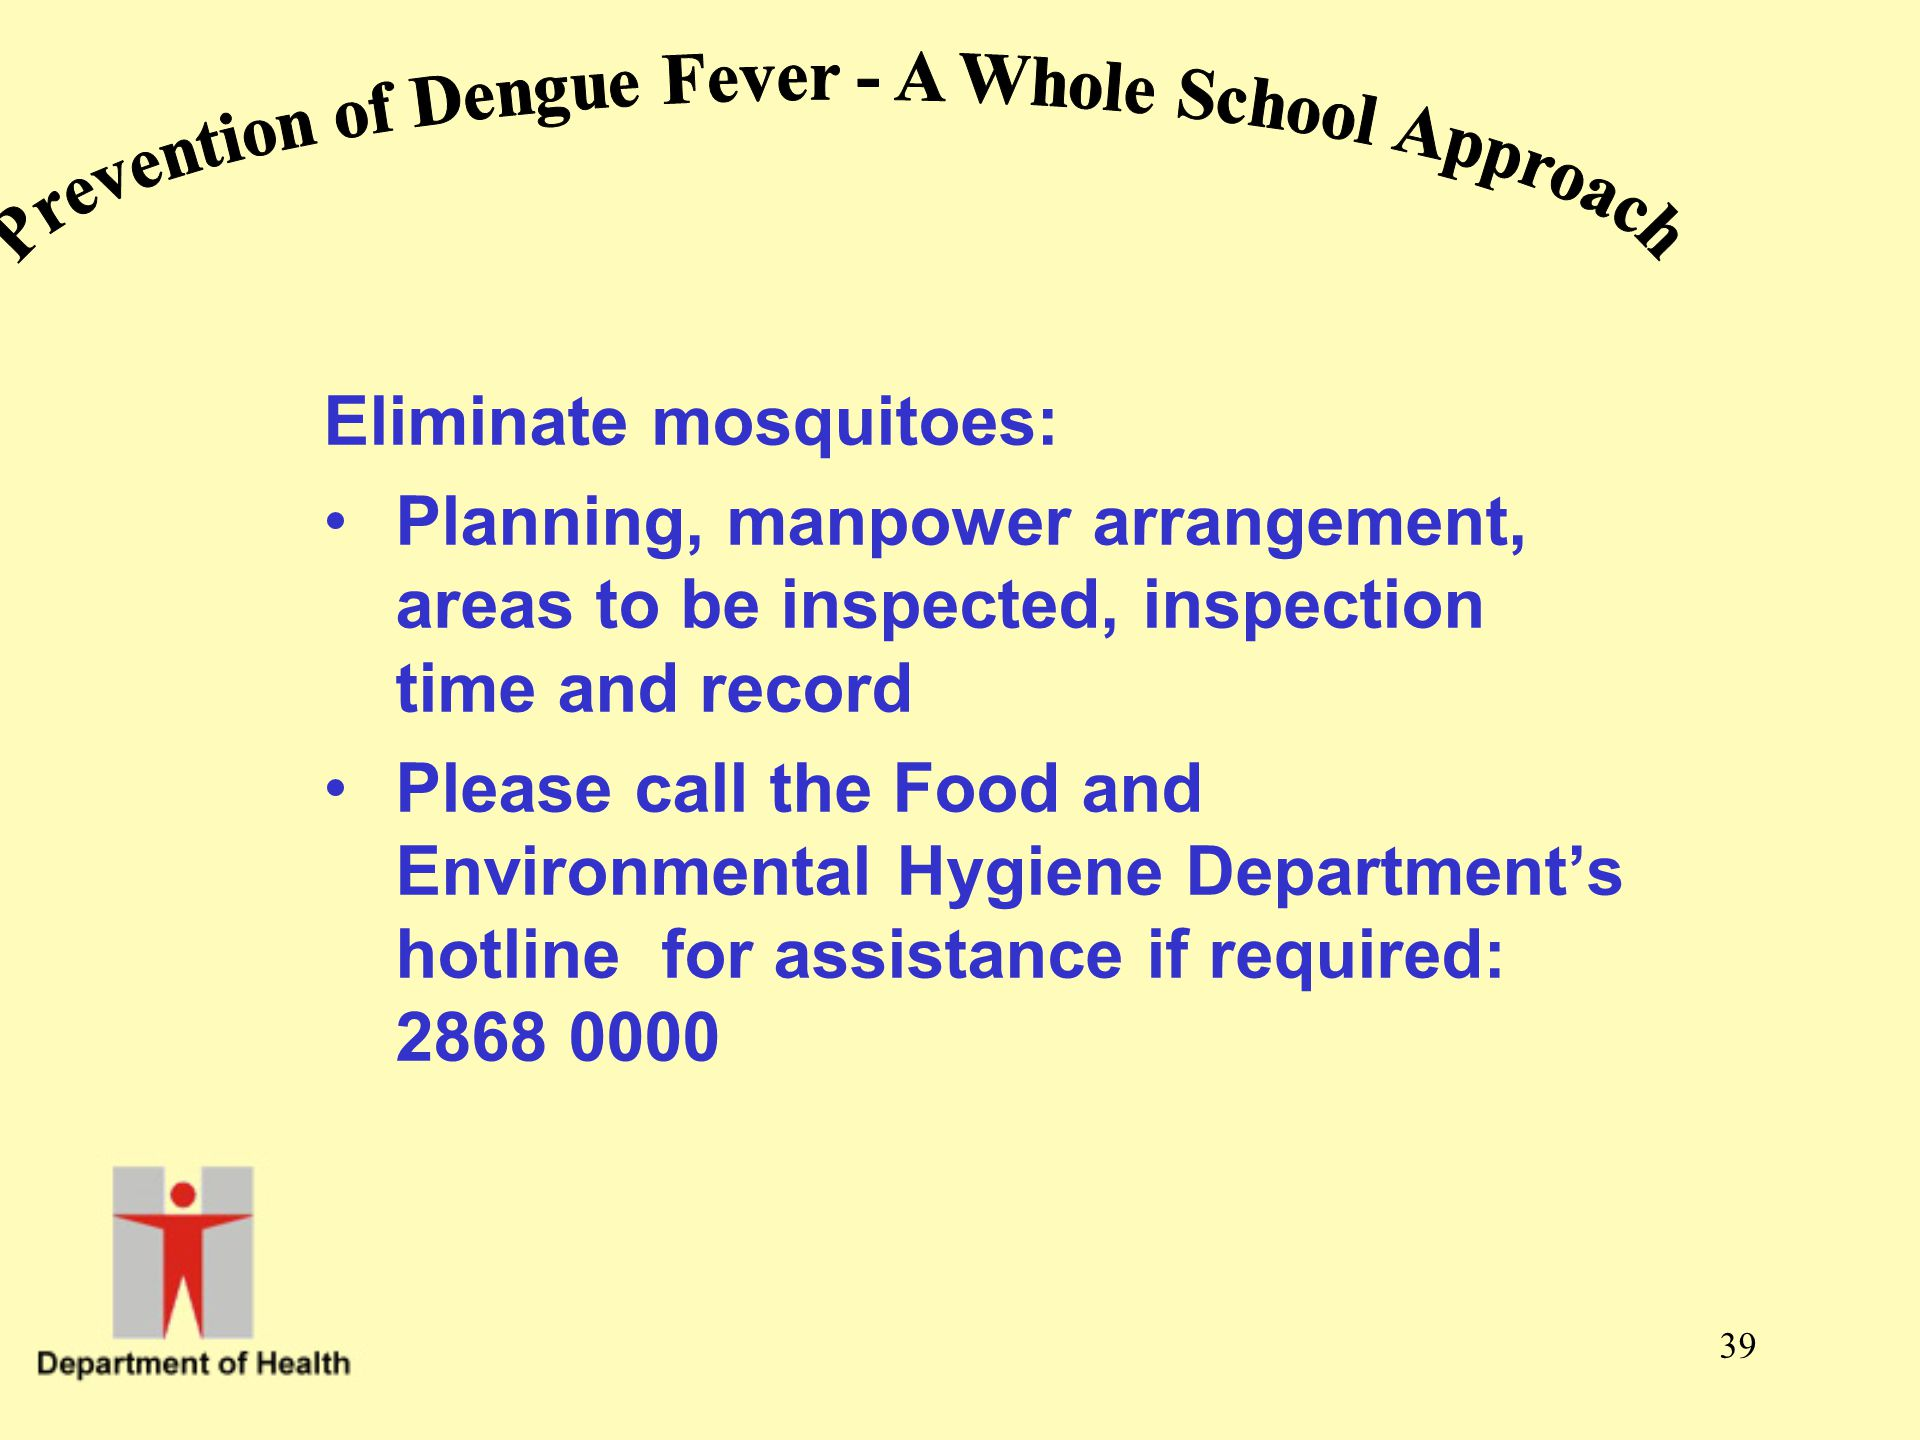 Prevention of Dengue Fever - A Whole School Approach